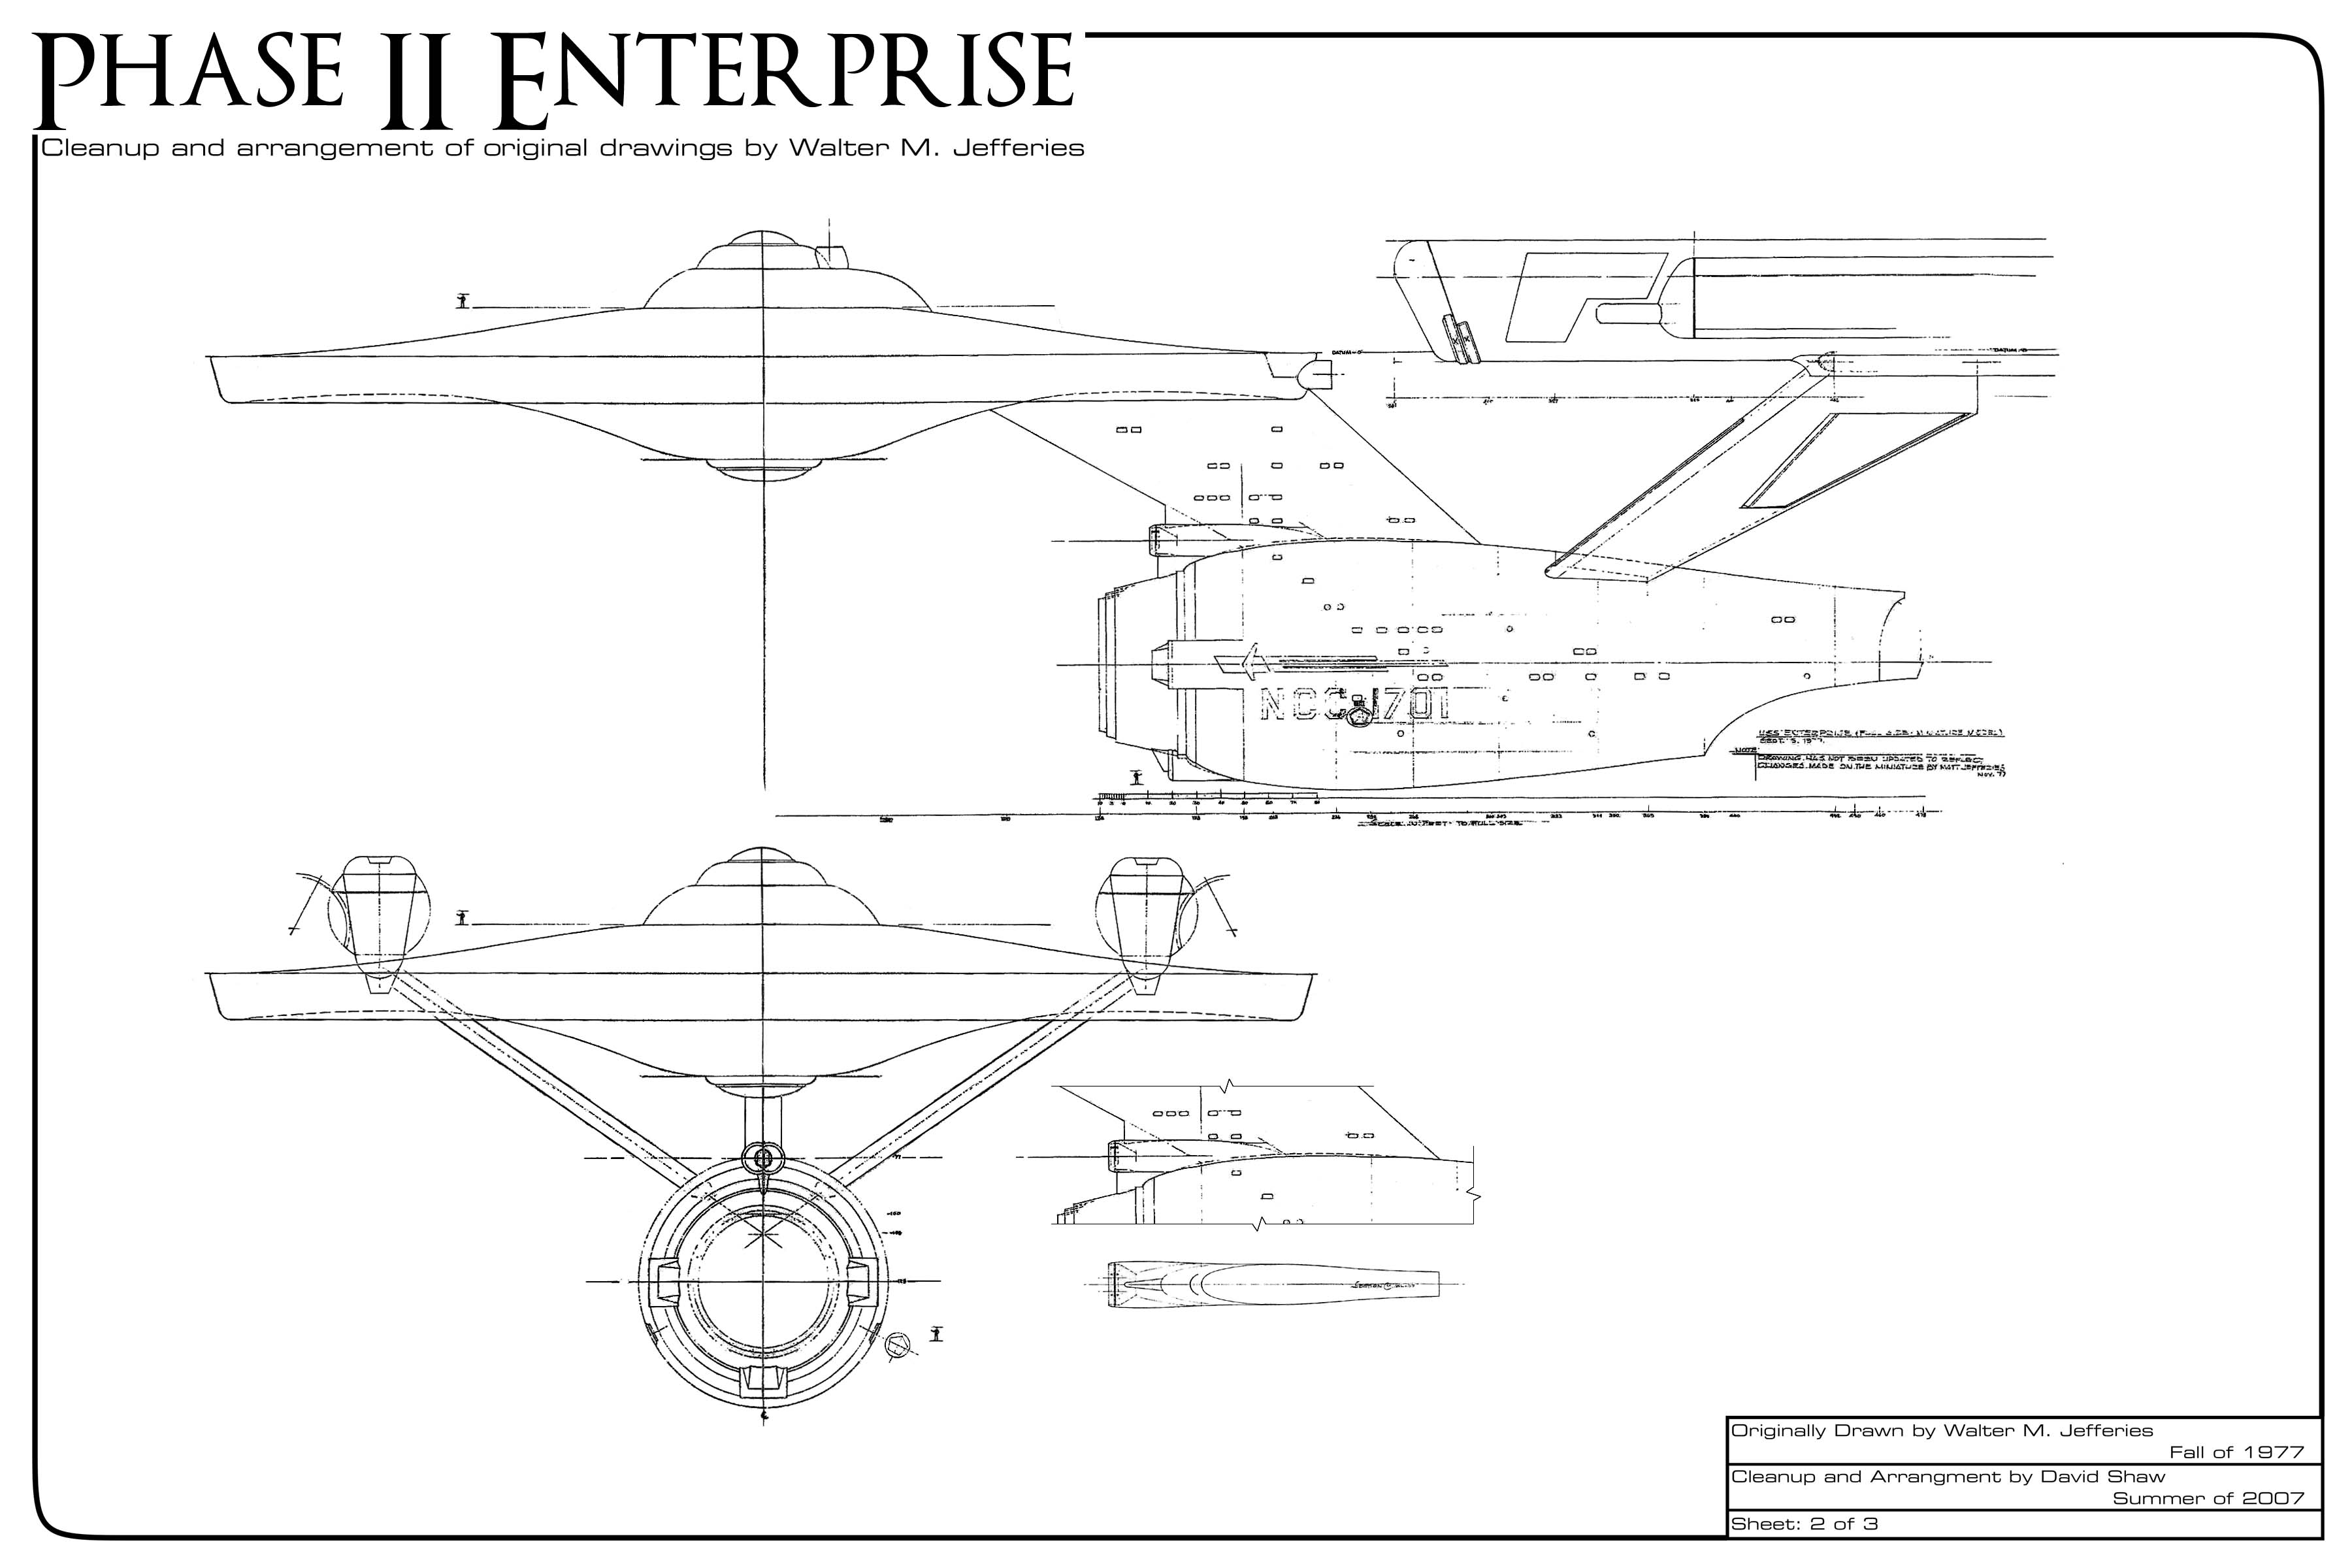 Star trek blueprints phase ii enterprise clean up project phase ii enterprise malvernweather Choice Image